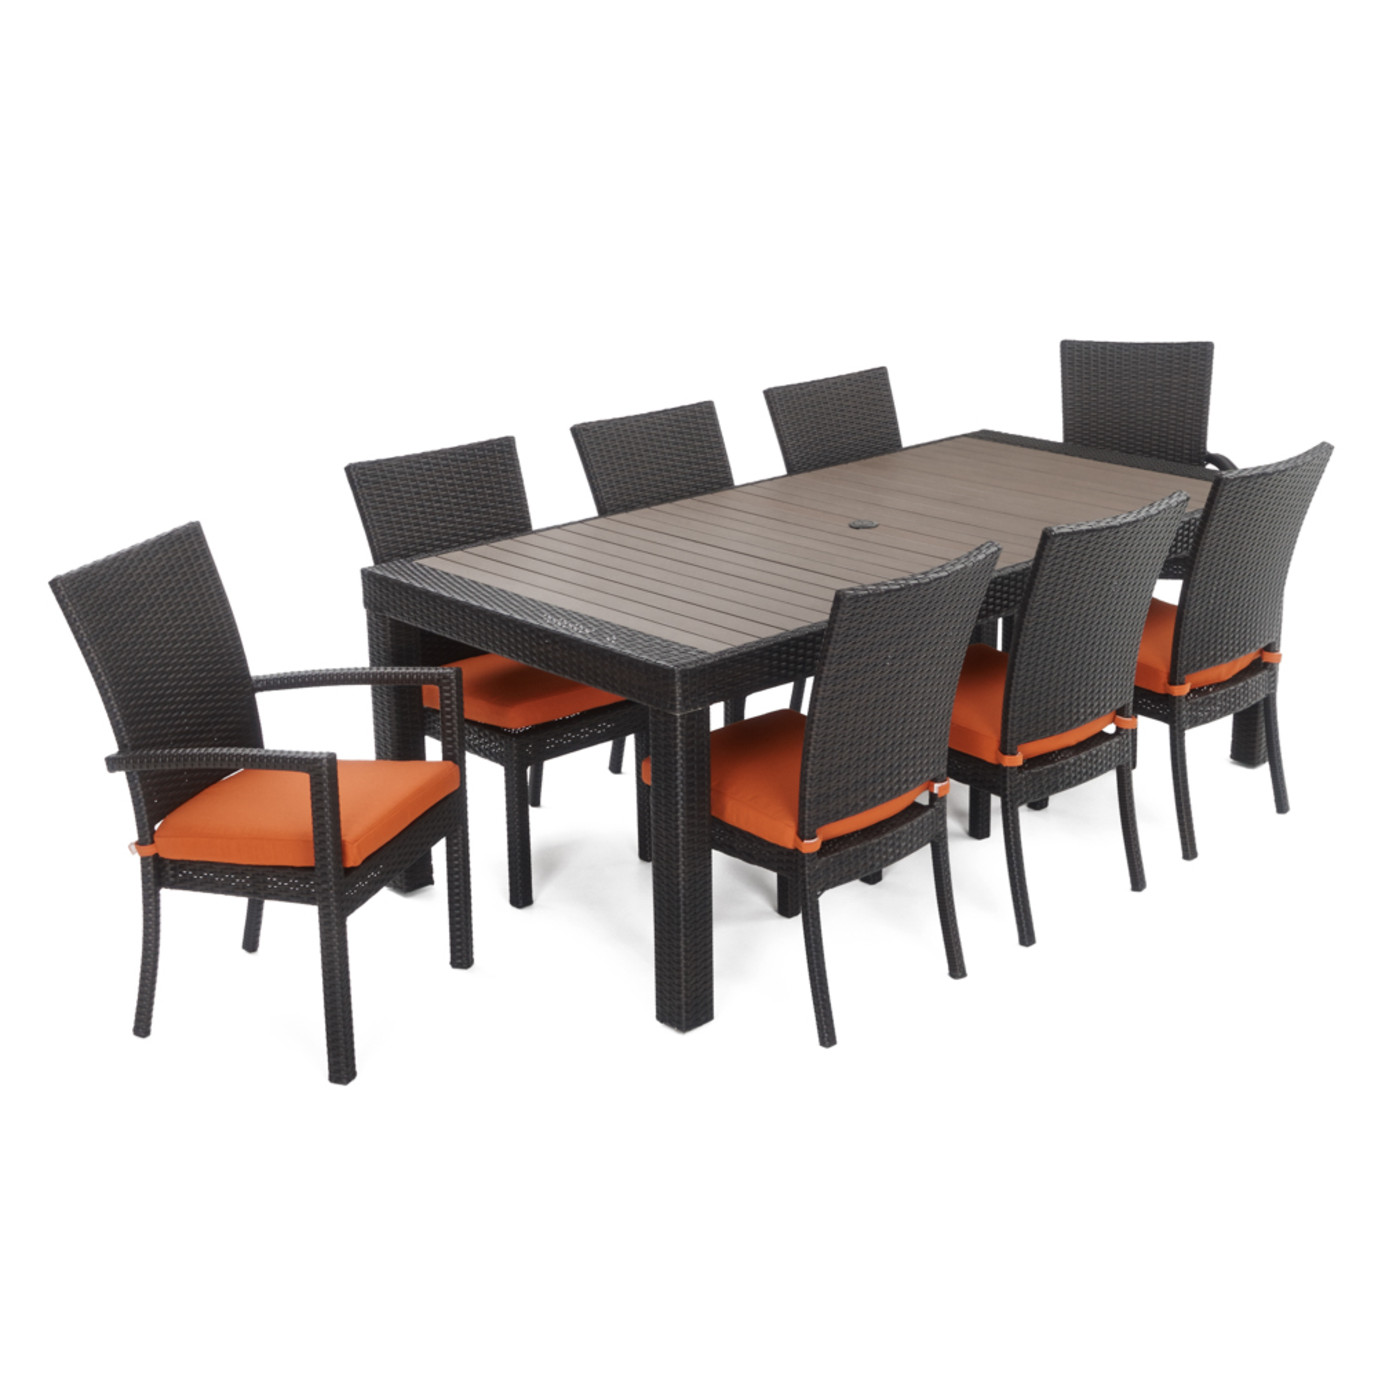 Deco™ 9pc Dining Set - Tikka Orange